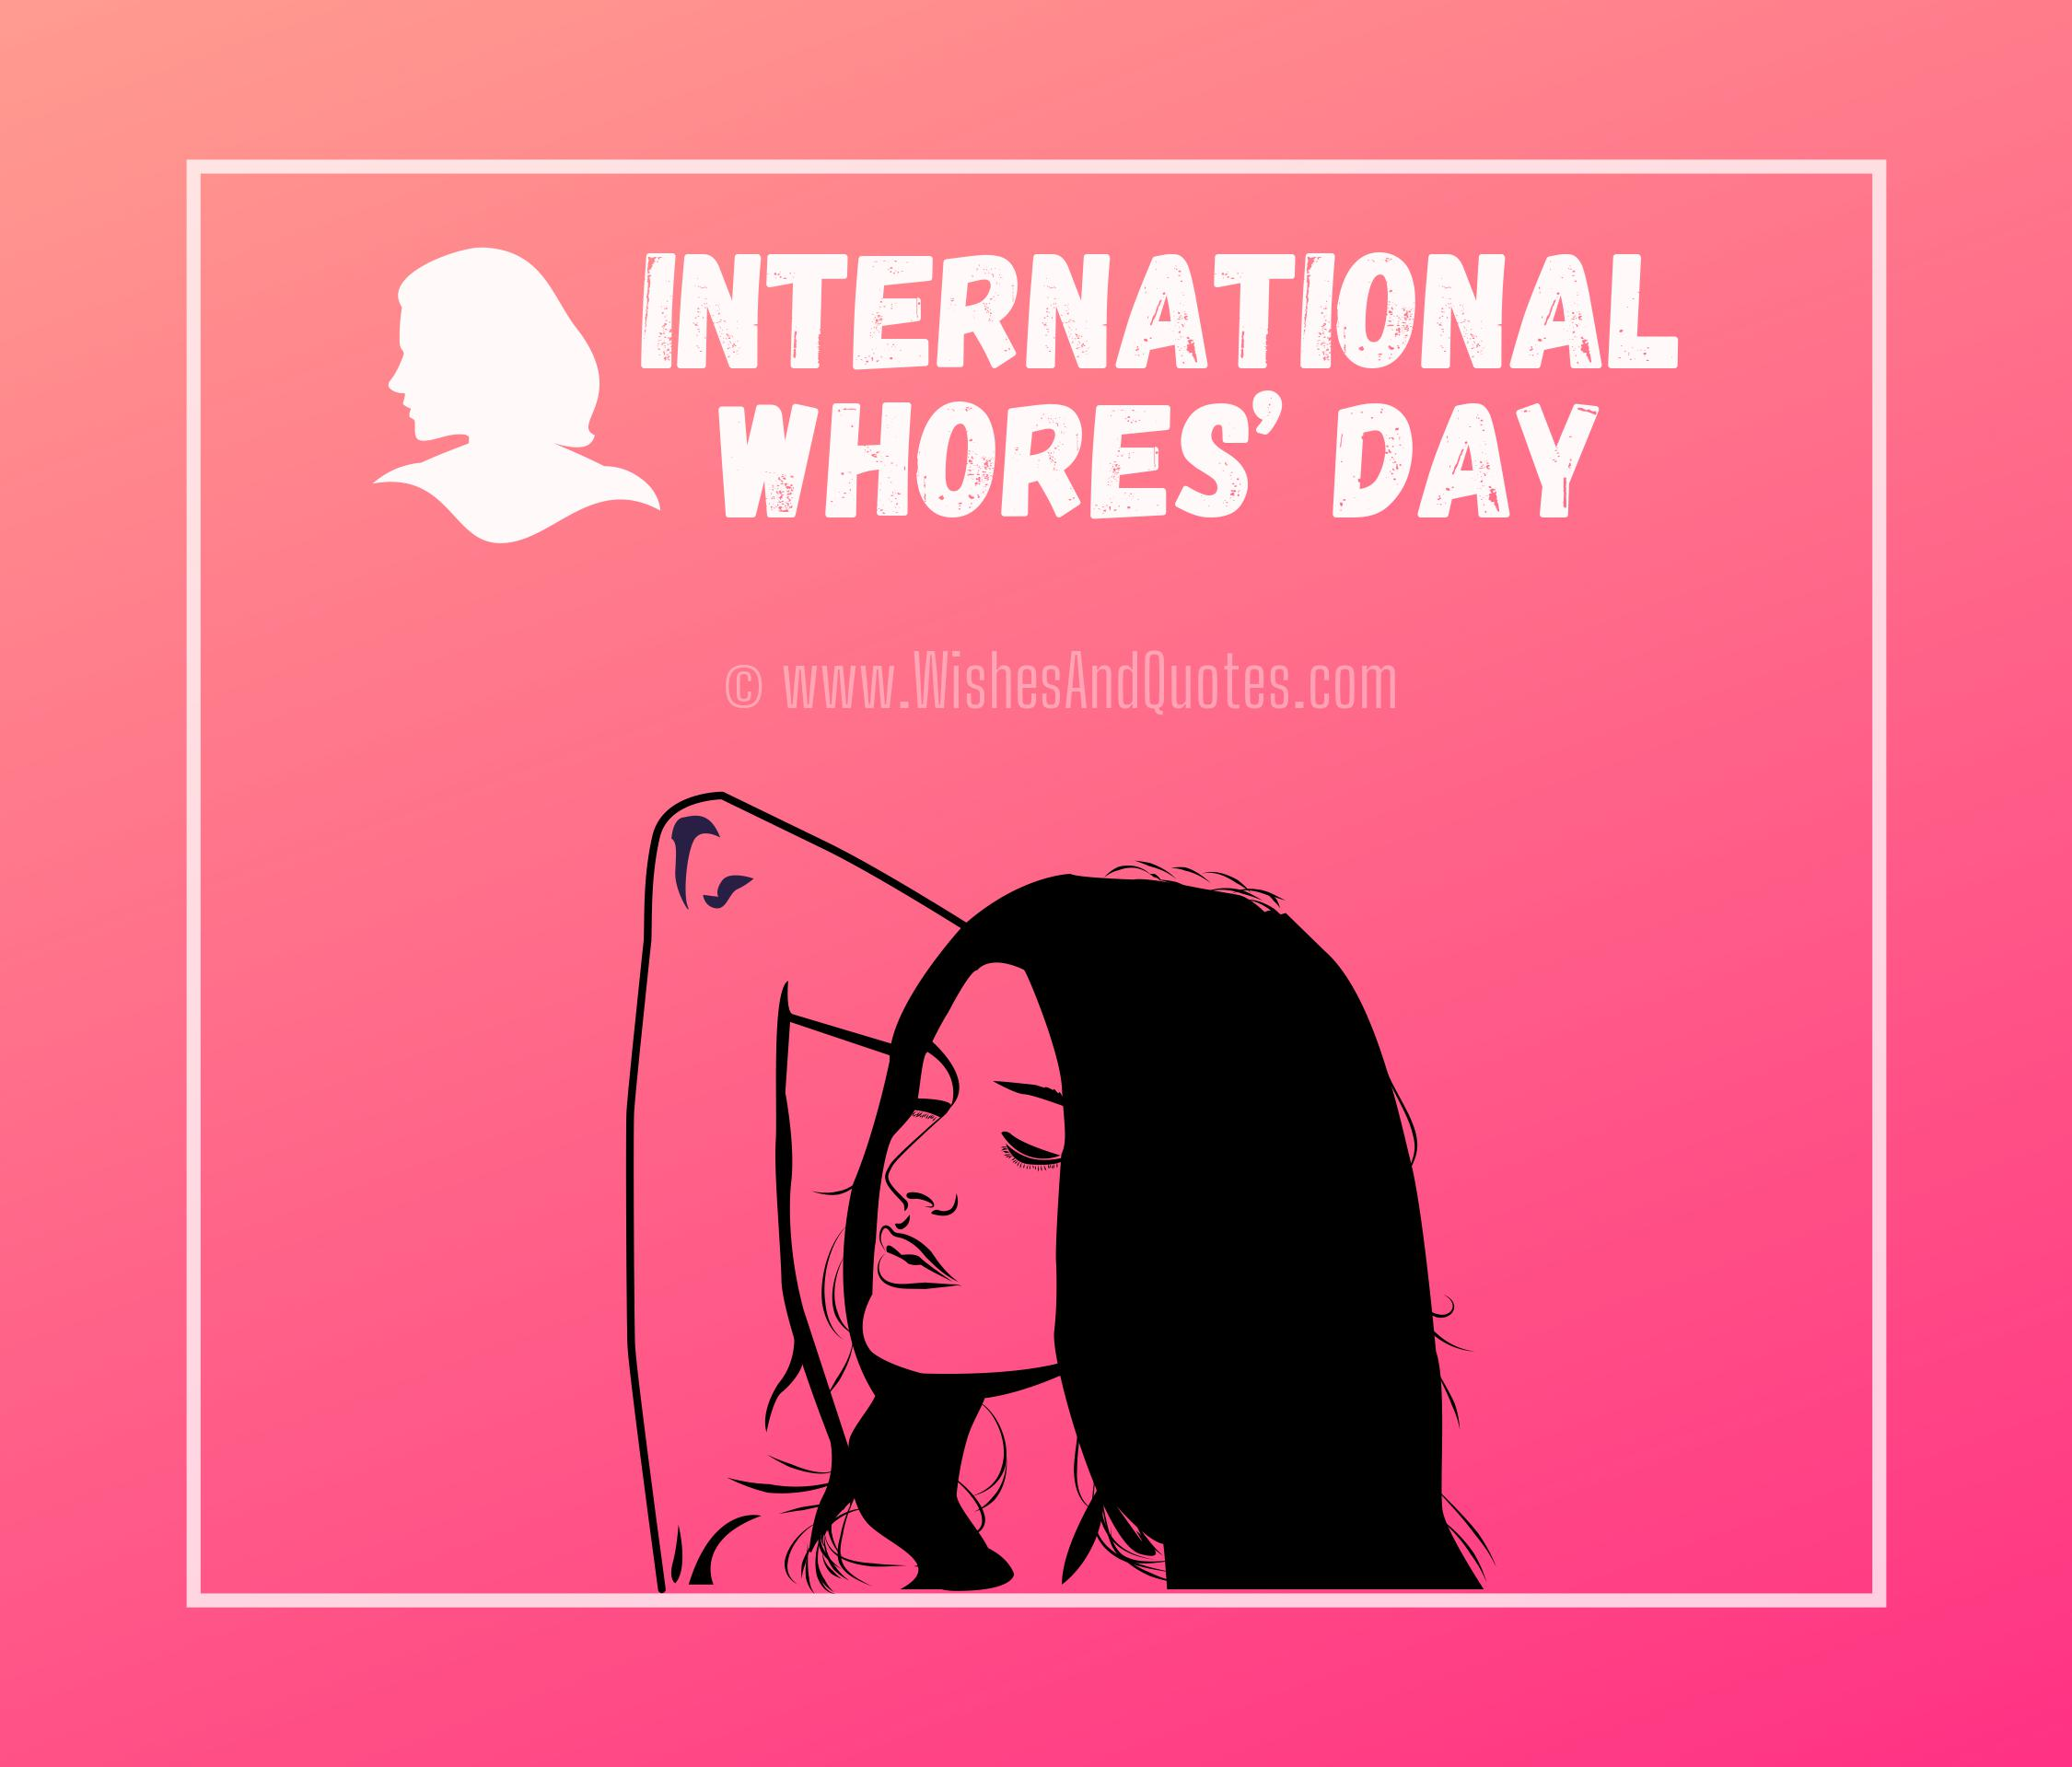 Whores' Day